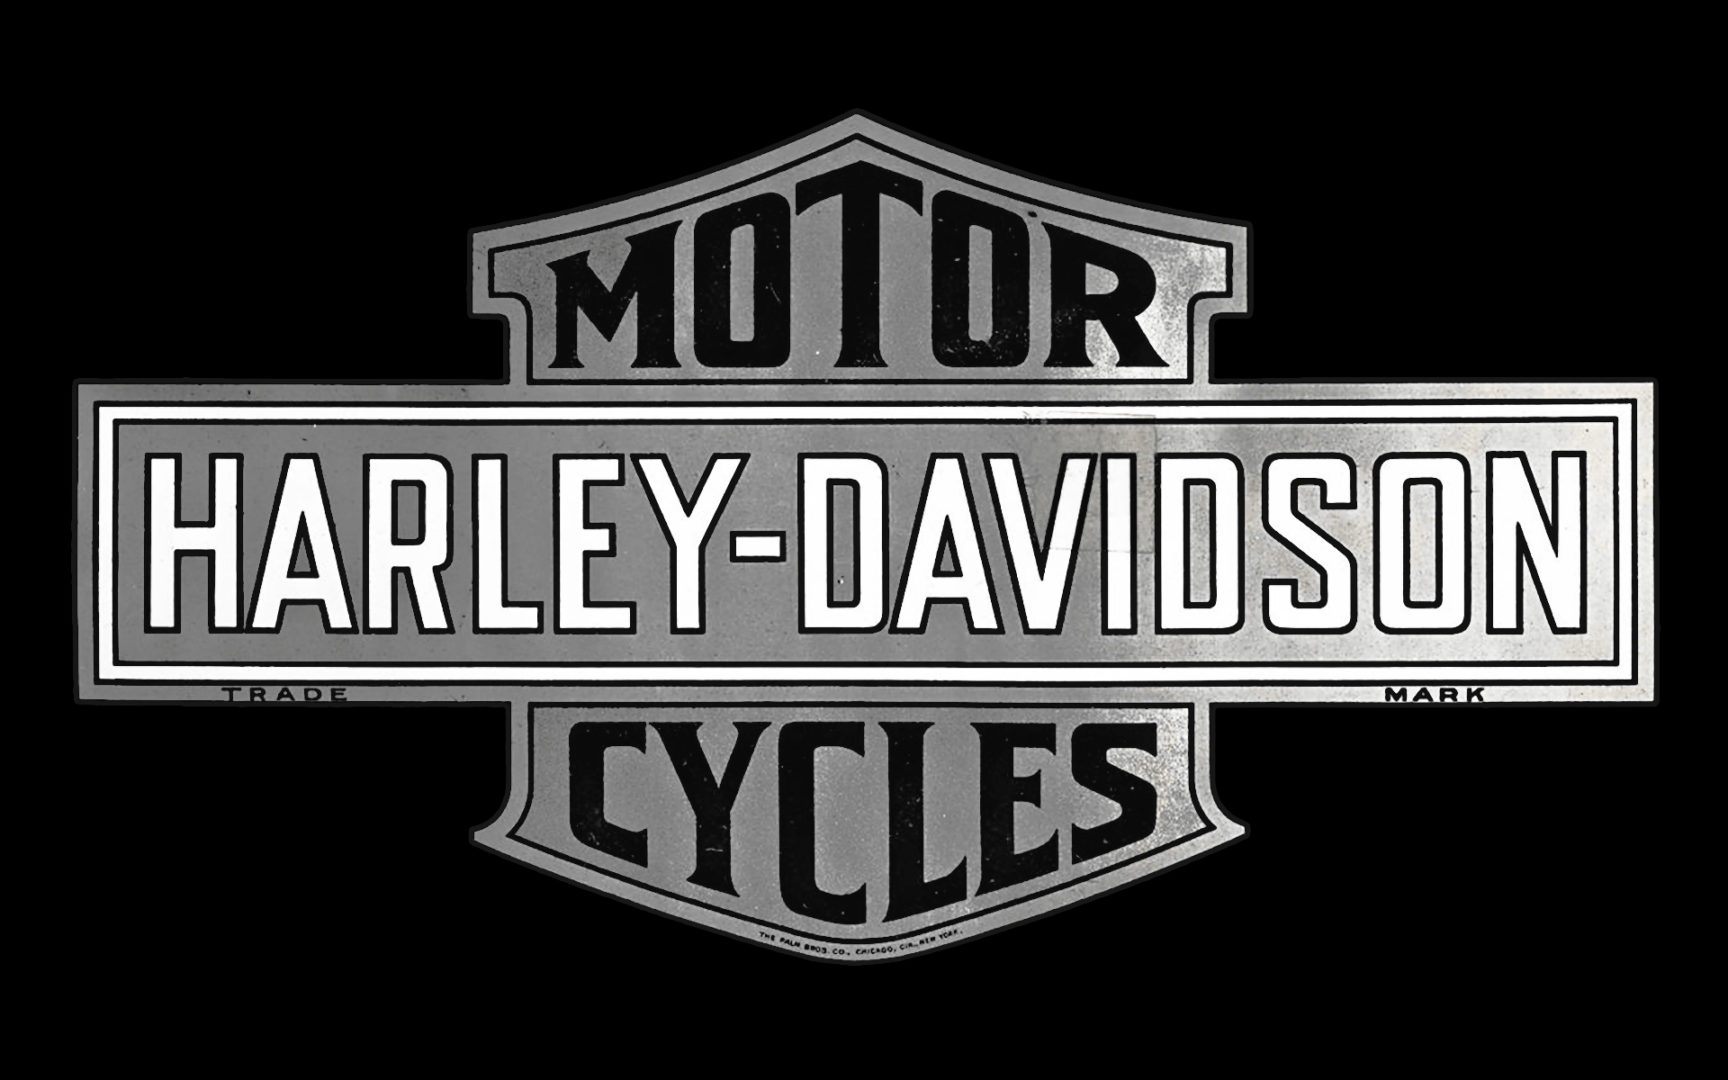 Harley-Davidson Motorcycle Logo History And Meaning, Bike